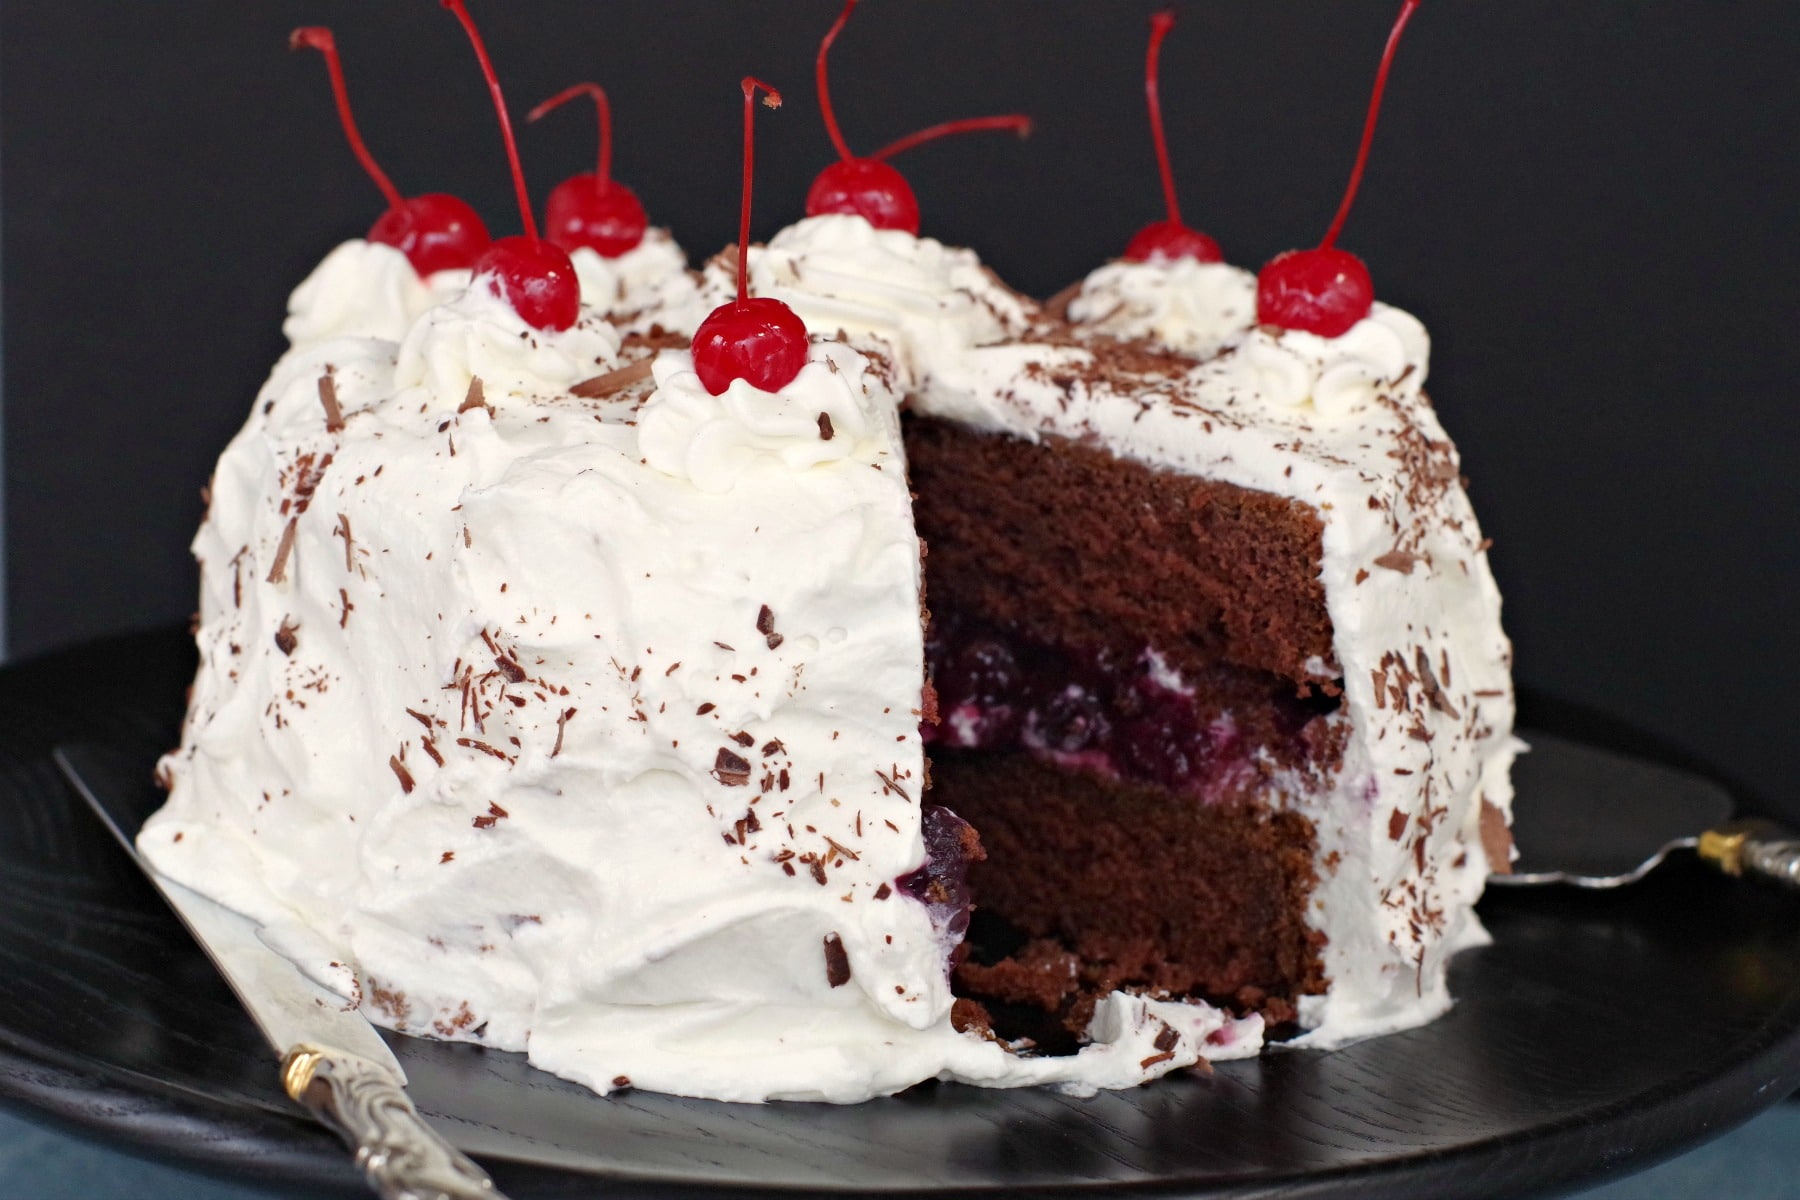 Homemade Black forest cake with slice taken out